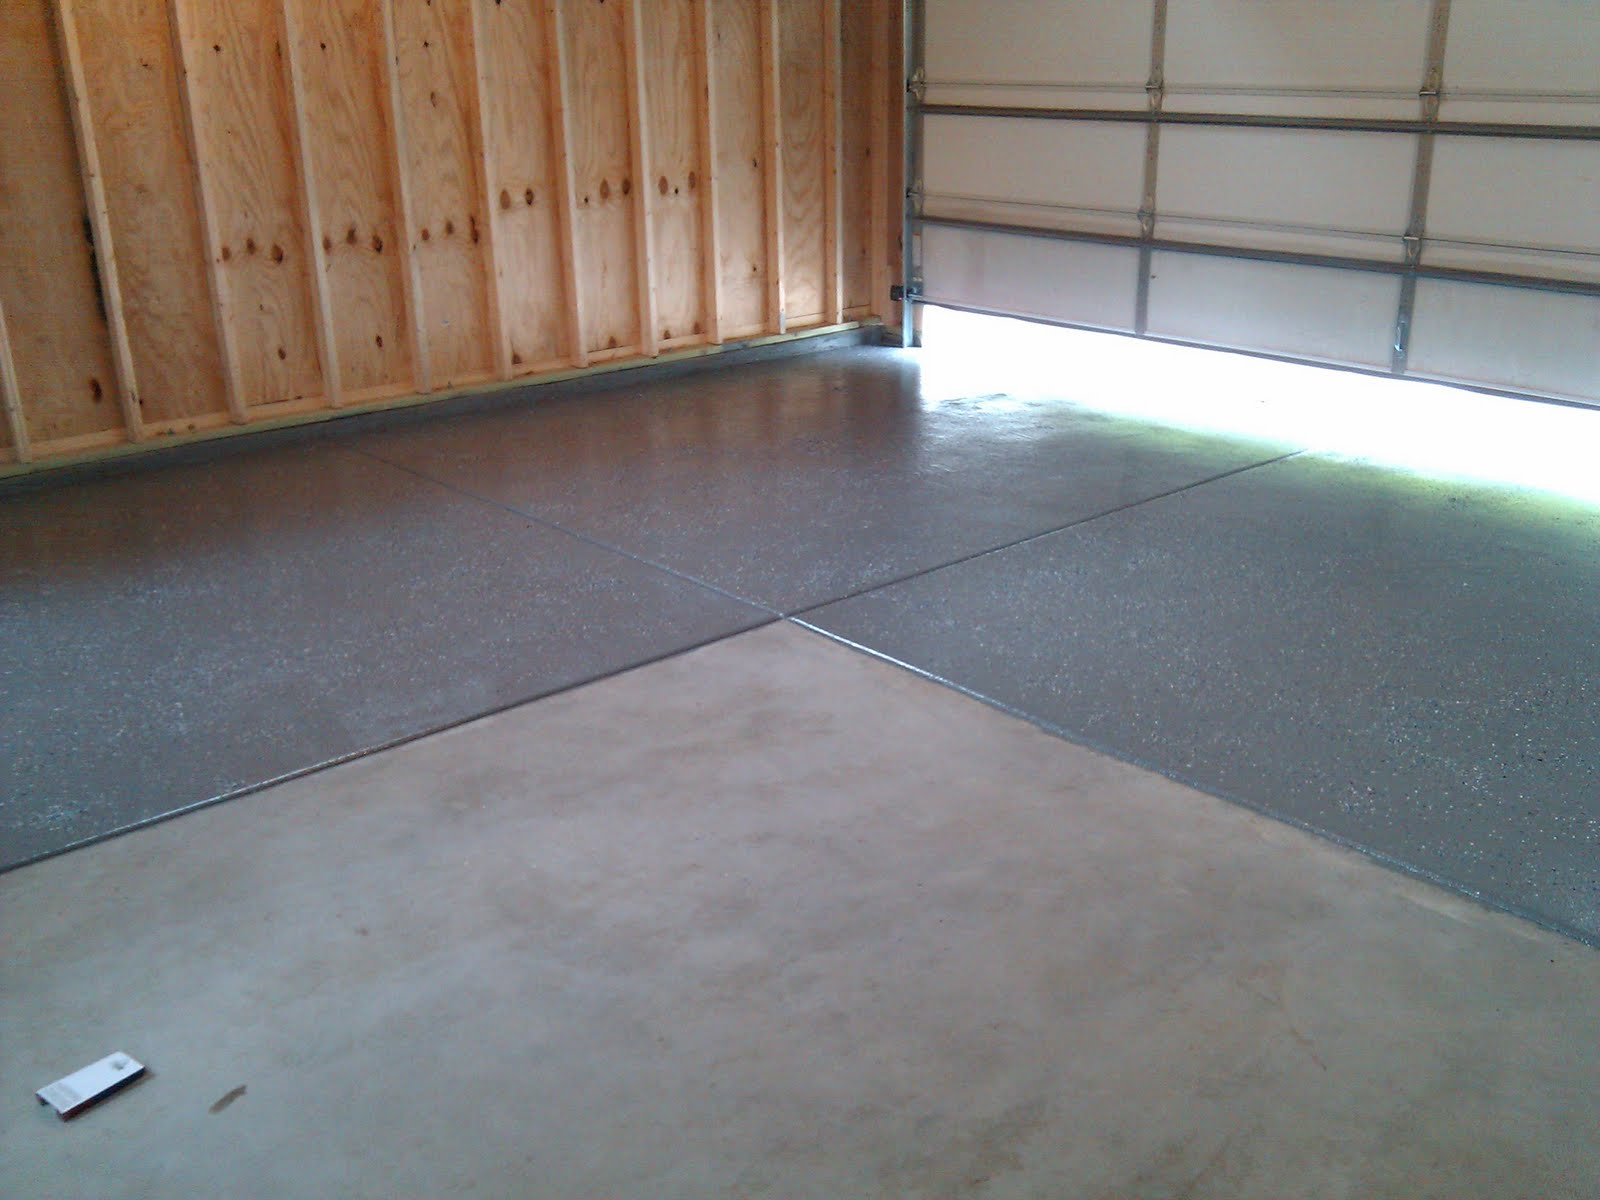 Epoxy Garage Floor Diy Epoxy Garage Floor. 36 X 79 Exterior Door. Paint For Garage Floor Lowes. Affordable Security Doors. Garage Doors Pictures. Motorized Garage Storage Lift. Door Chest. Clearwater Window And Door. Replacement Garage Door Sensors